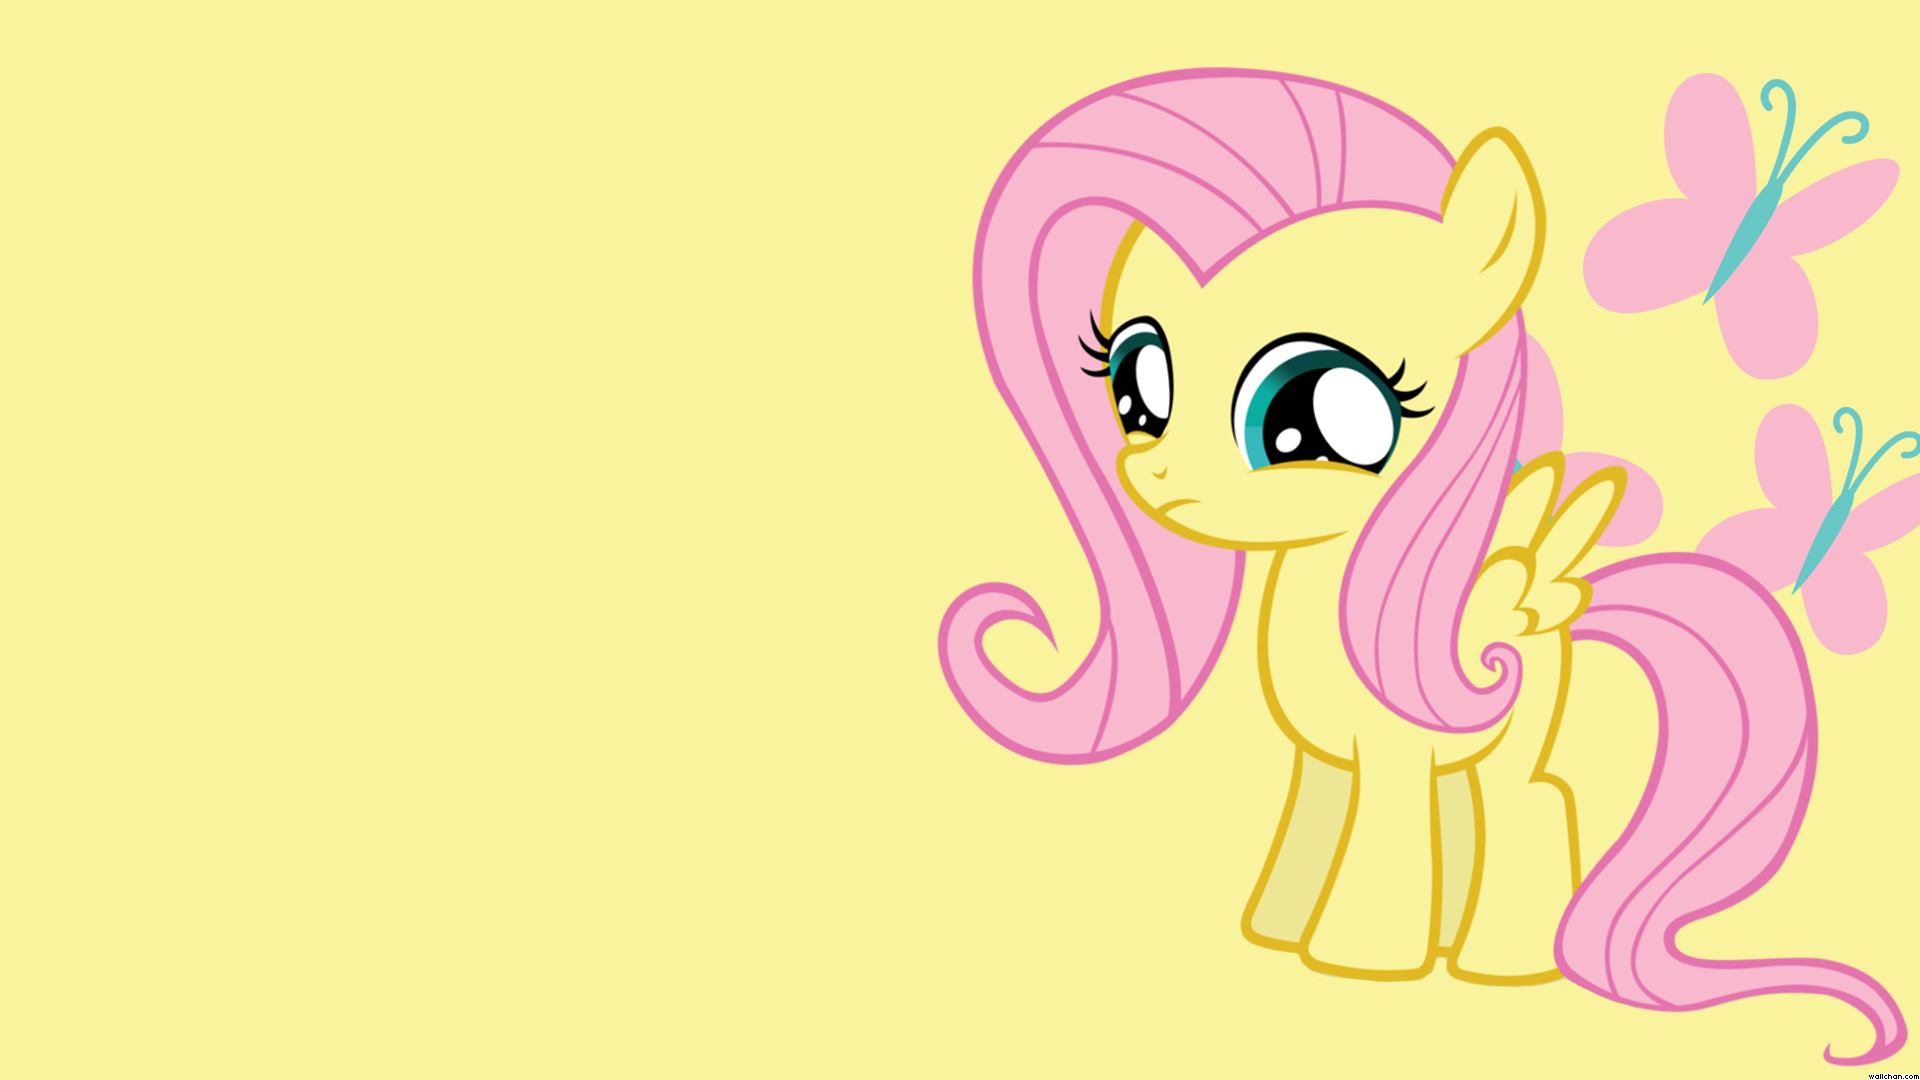 Download Free Pony Wallpapers 1920x1080